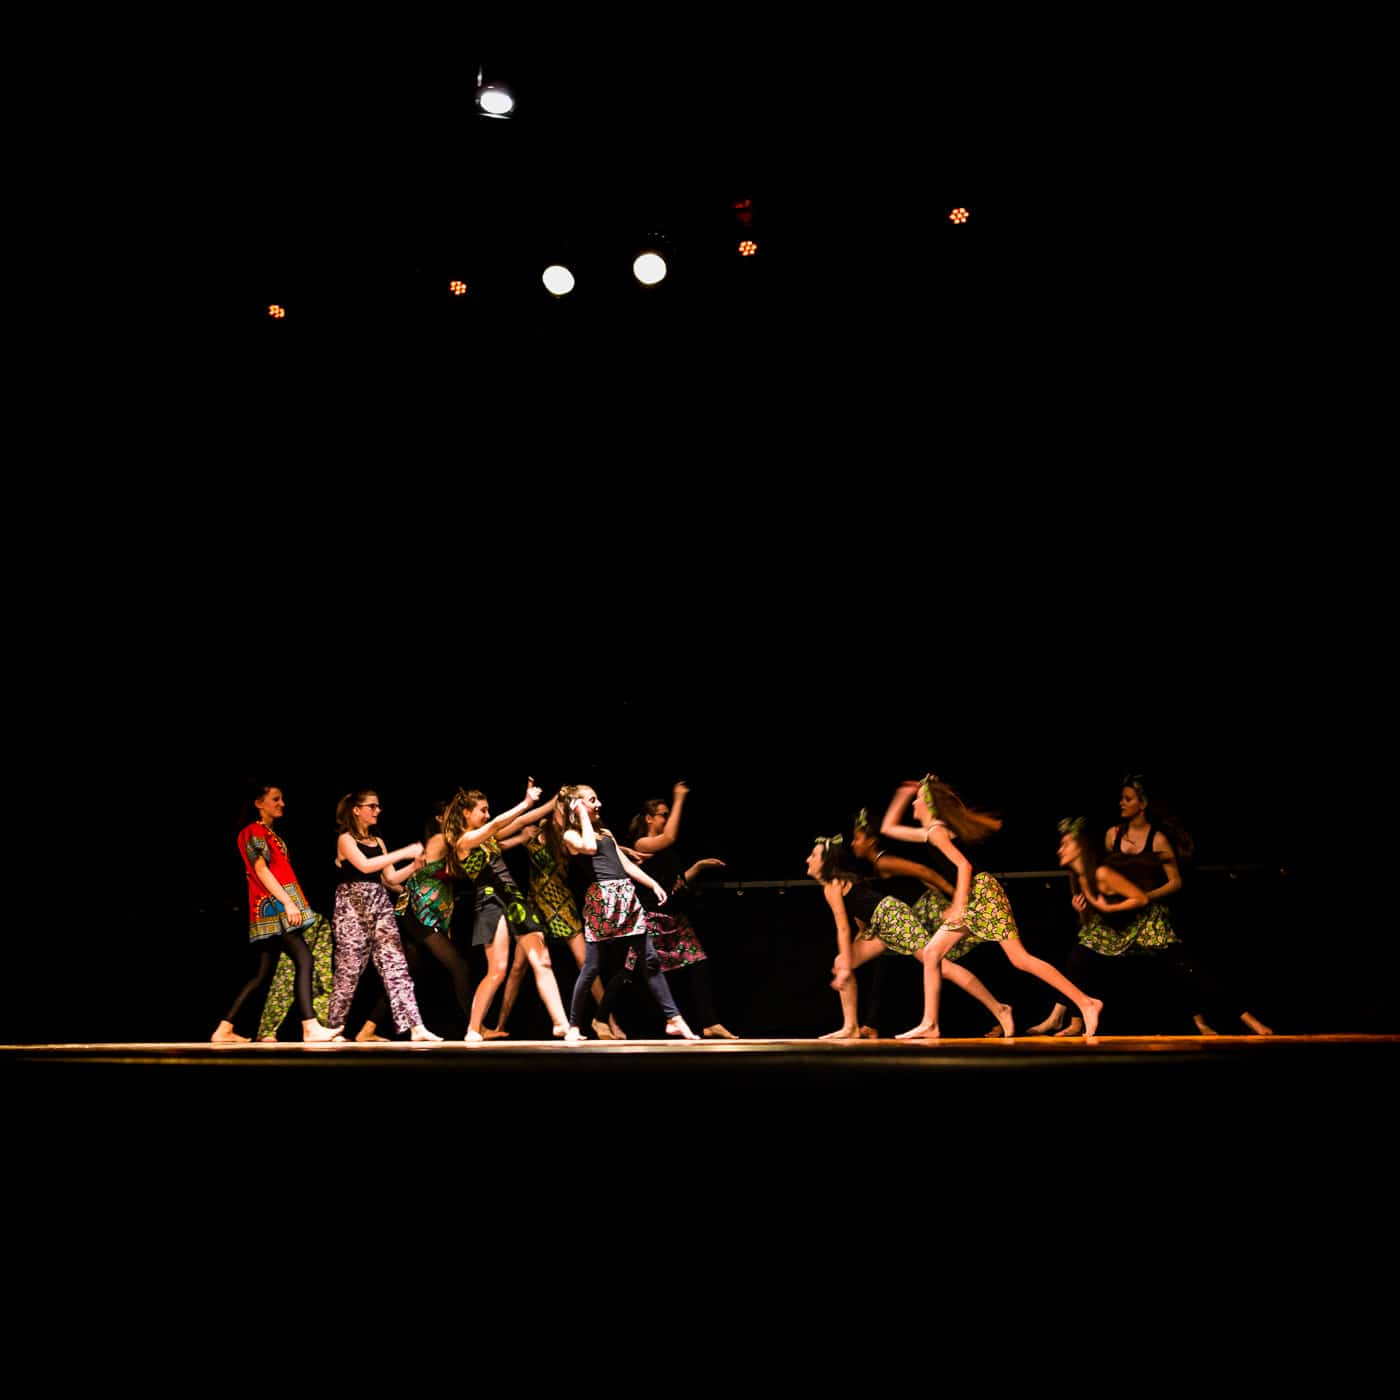 spectacle-de-danse-a-la-rotative-eleves-du-centre-d-animation-de-buxerolles